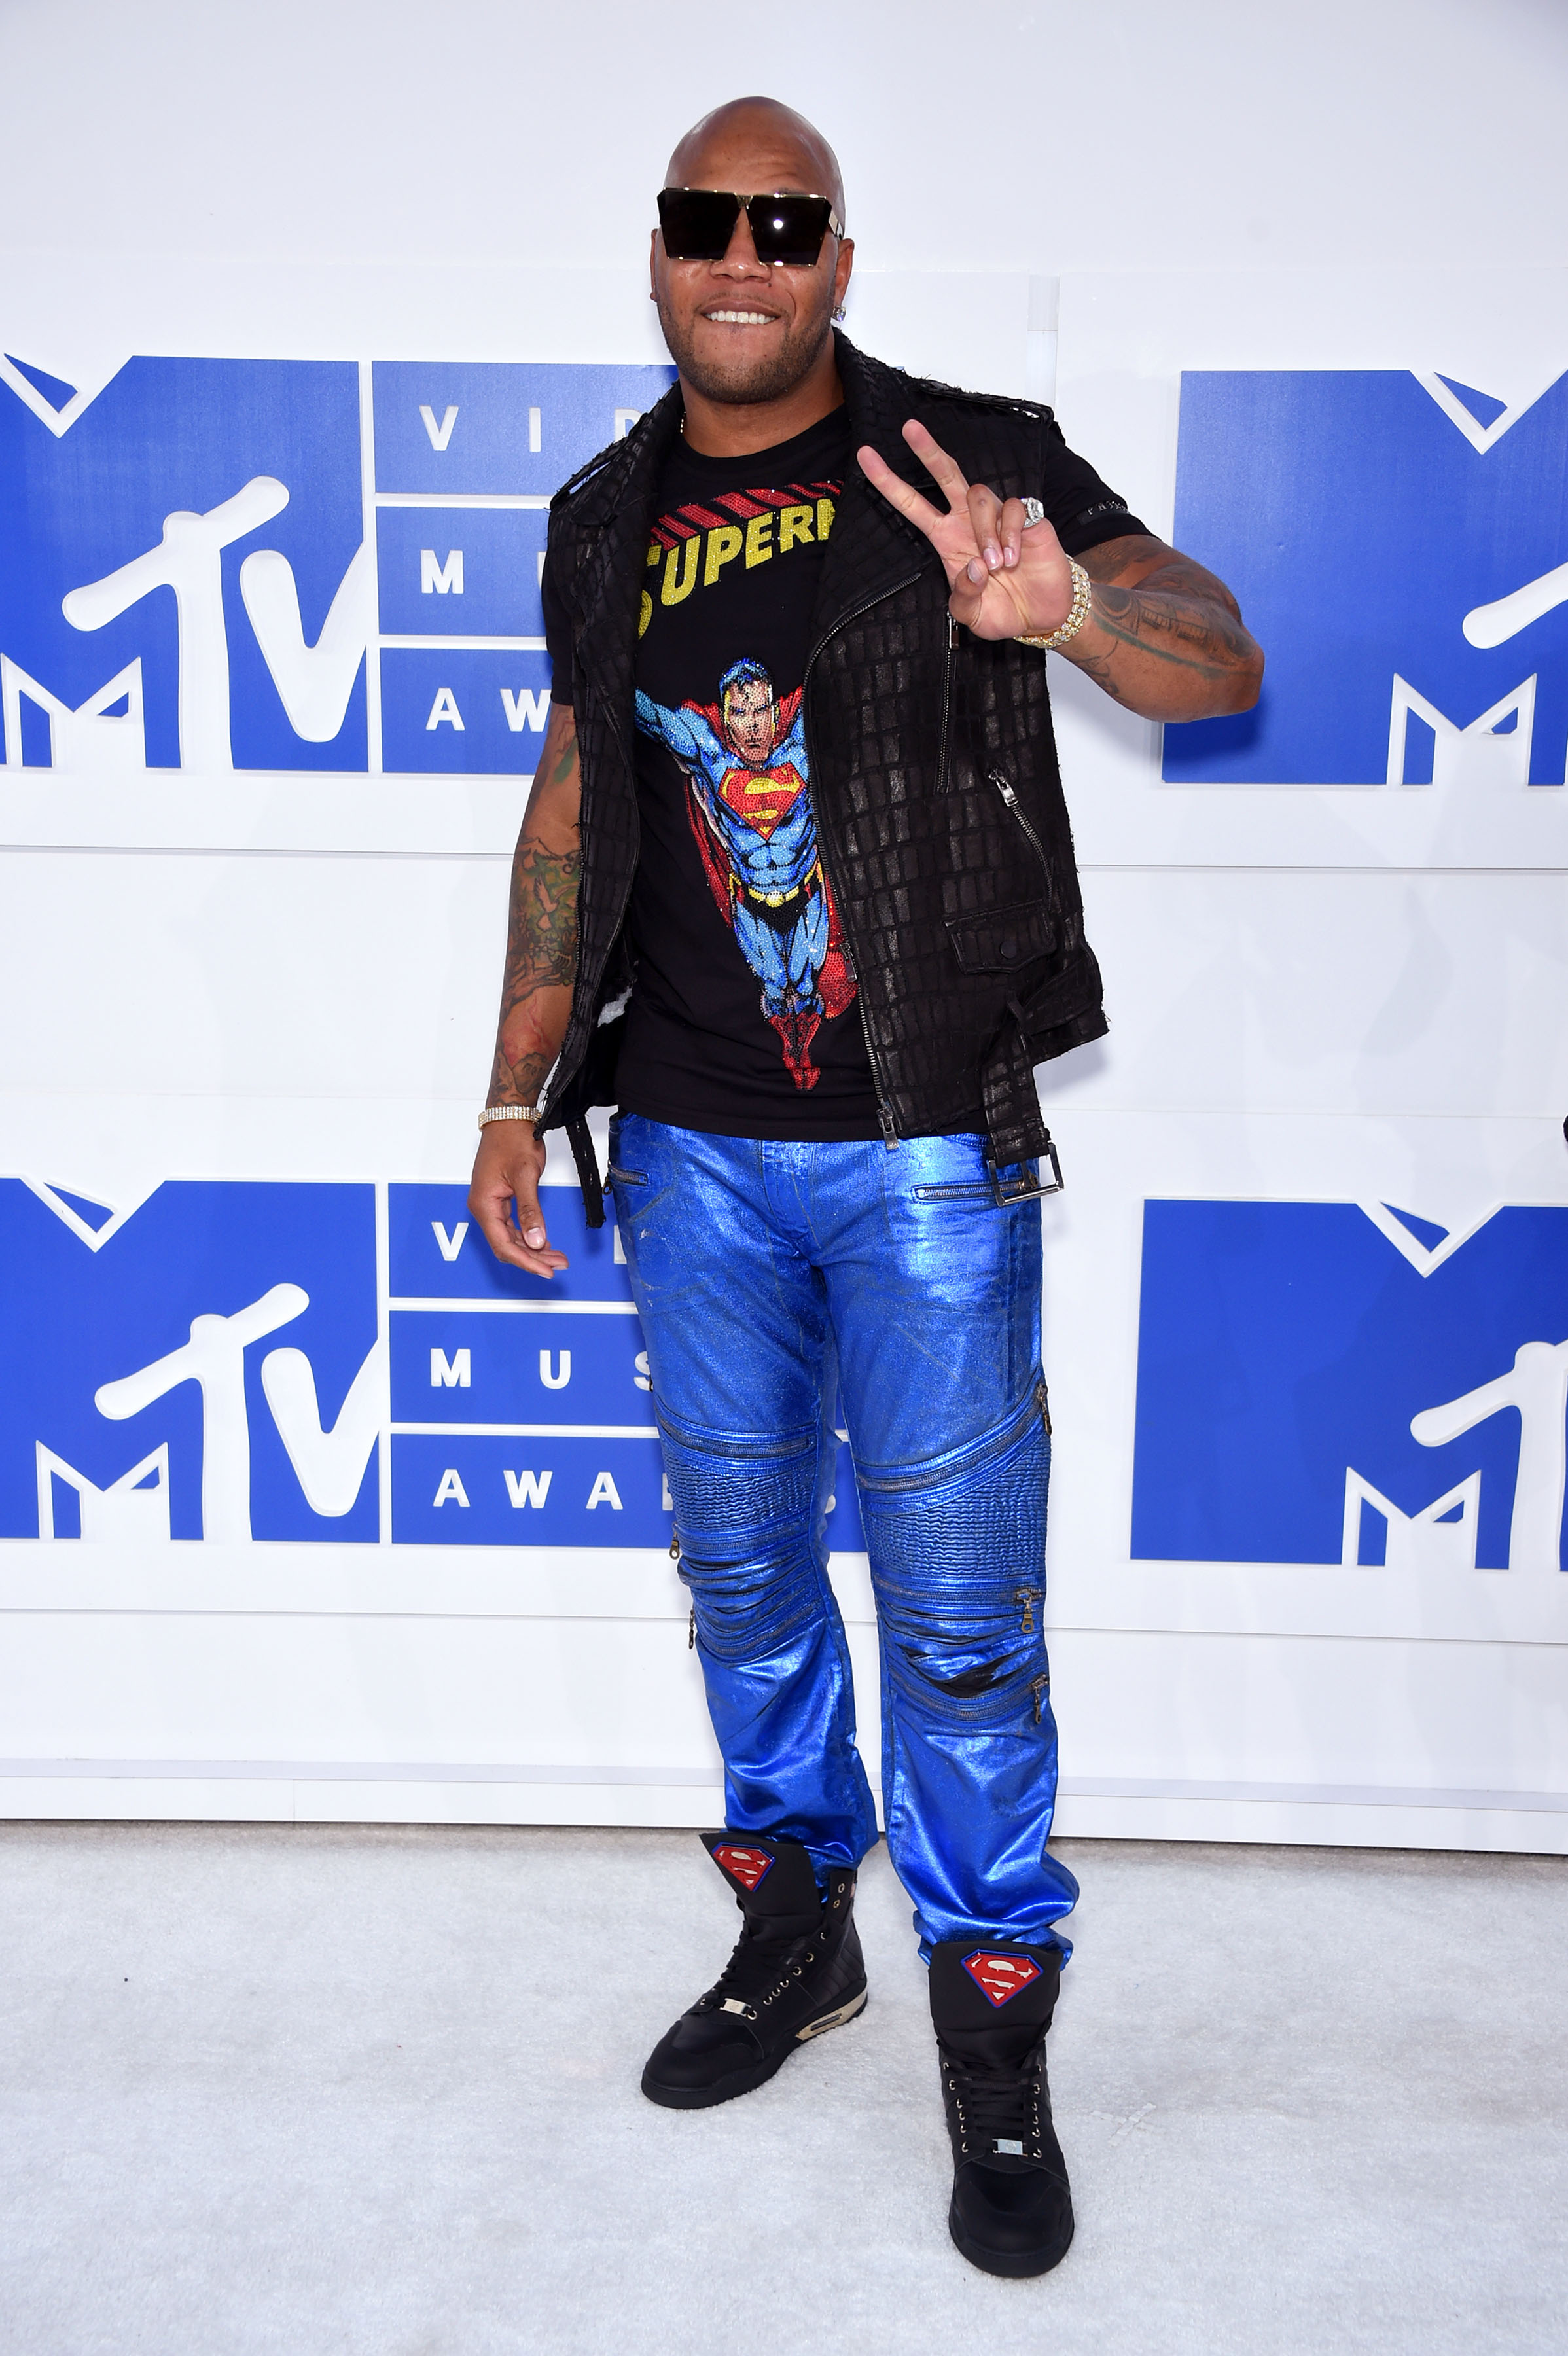 Flo Rida attends the 2016 MTV Video Music Awards at Madison Square Garden on Aug. 28, 2016 in New York City.